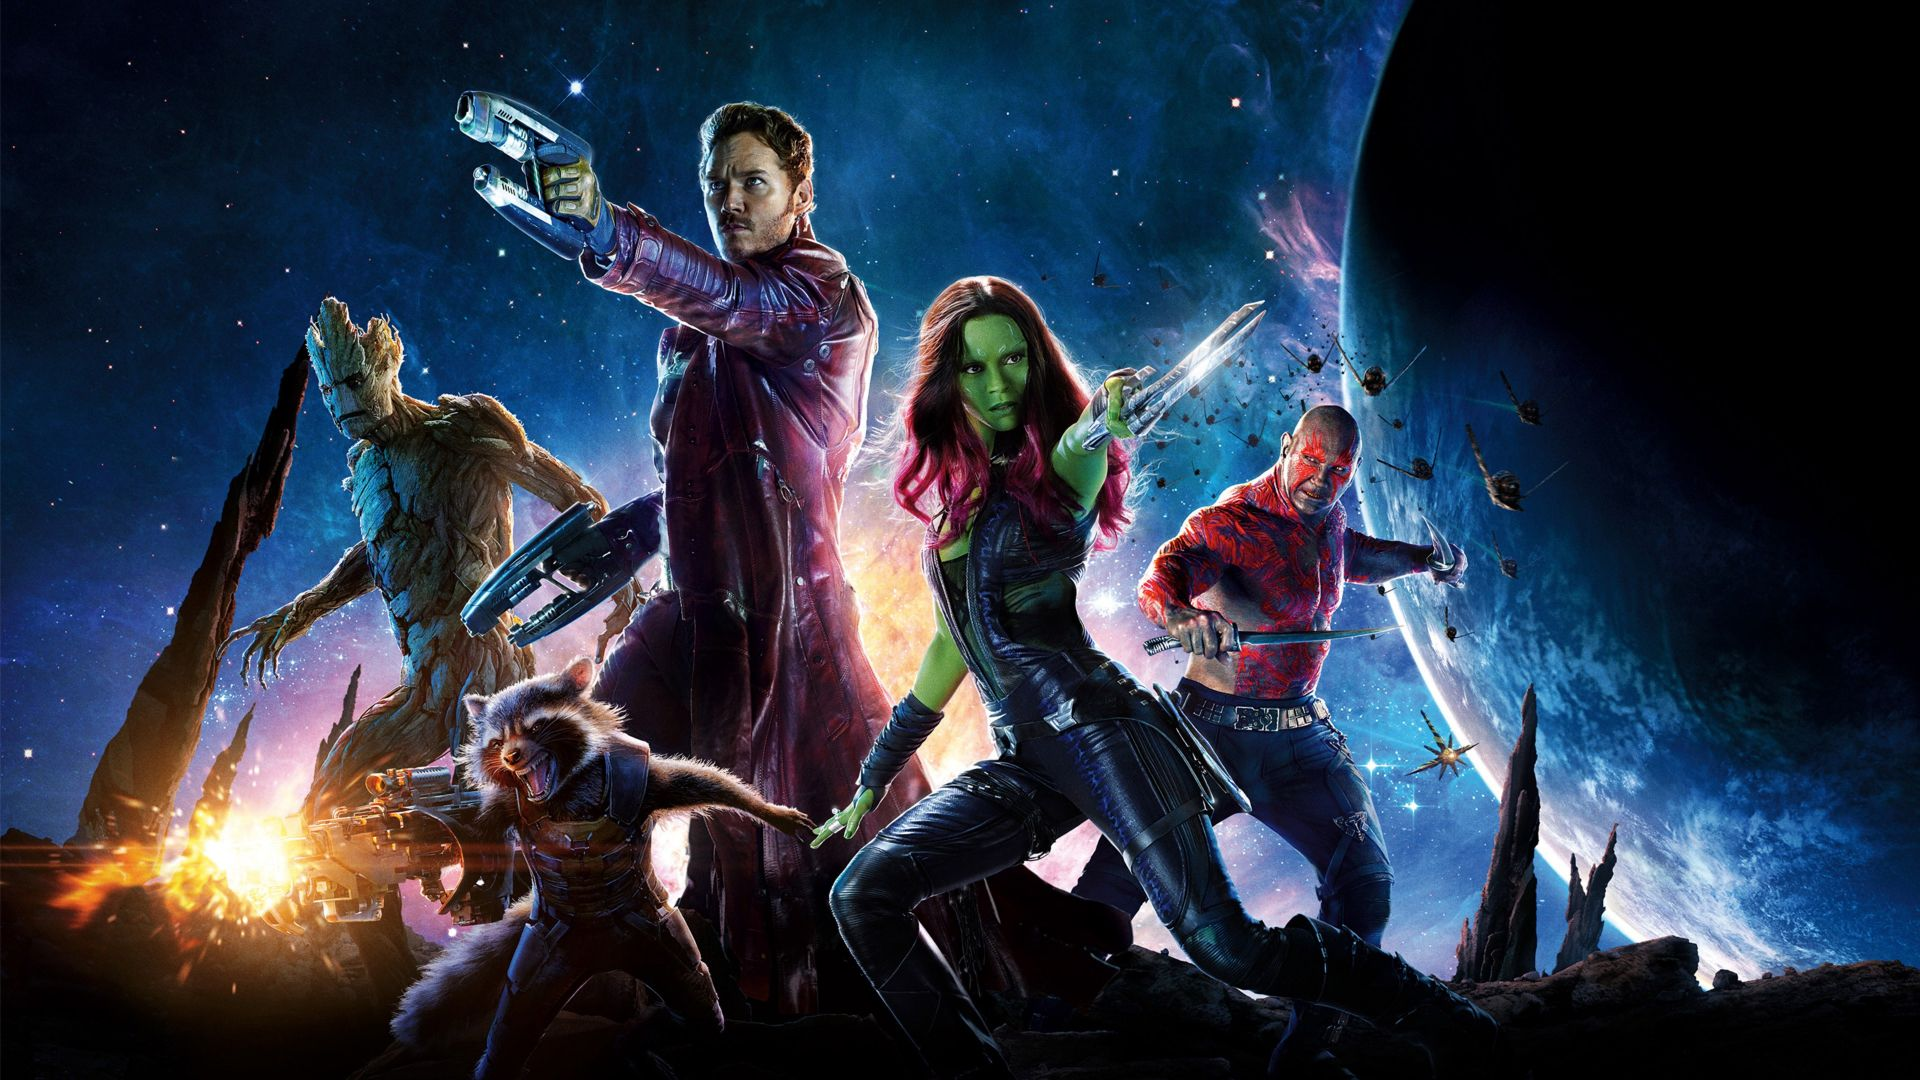 Guardians of the Galaxy Vol 2, Gamora, raccoon, Zoe Saldaña, best movies (horizontal)